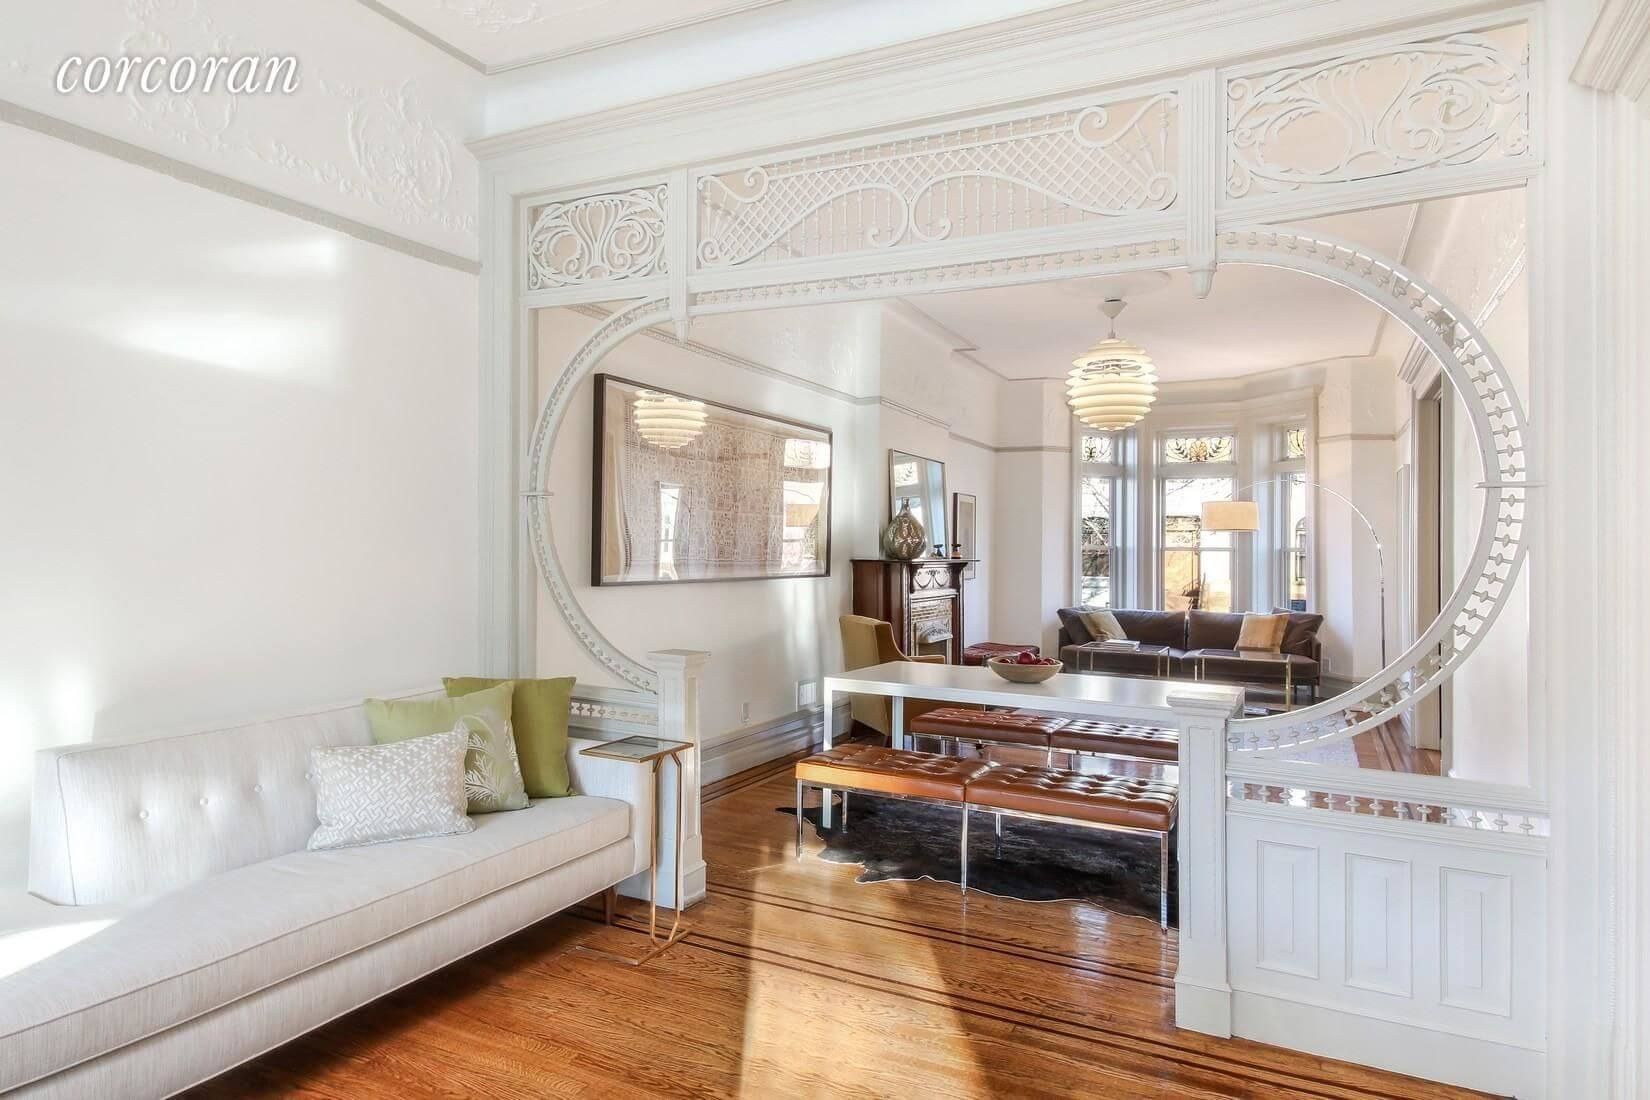 Brooklyn Homes for Sale in Prospect Lefferts Gardens at 140 Rutland Road